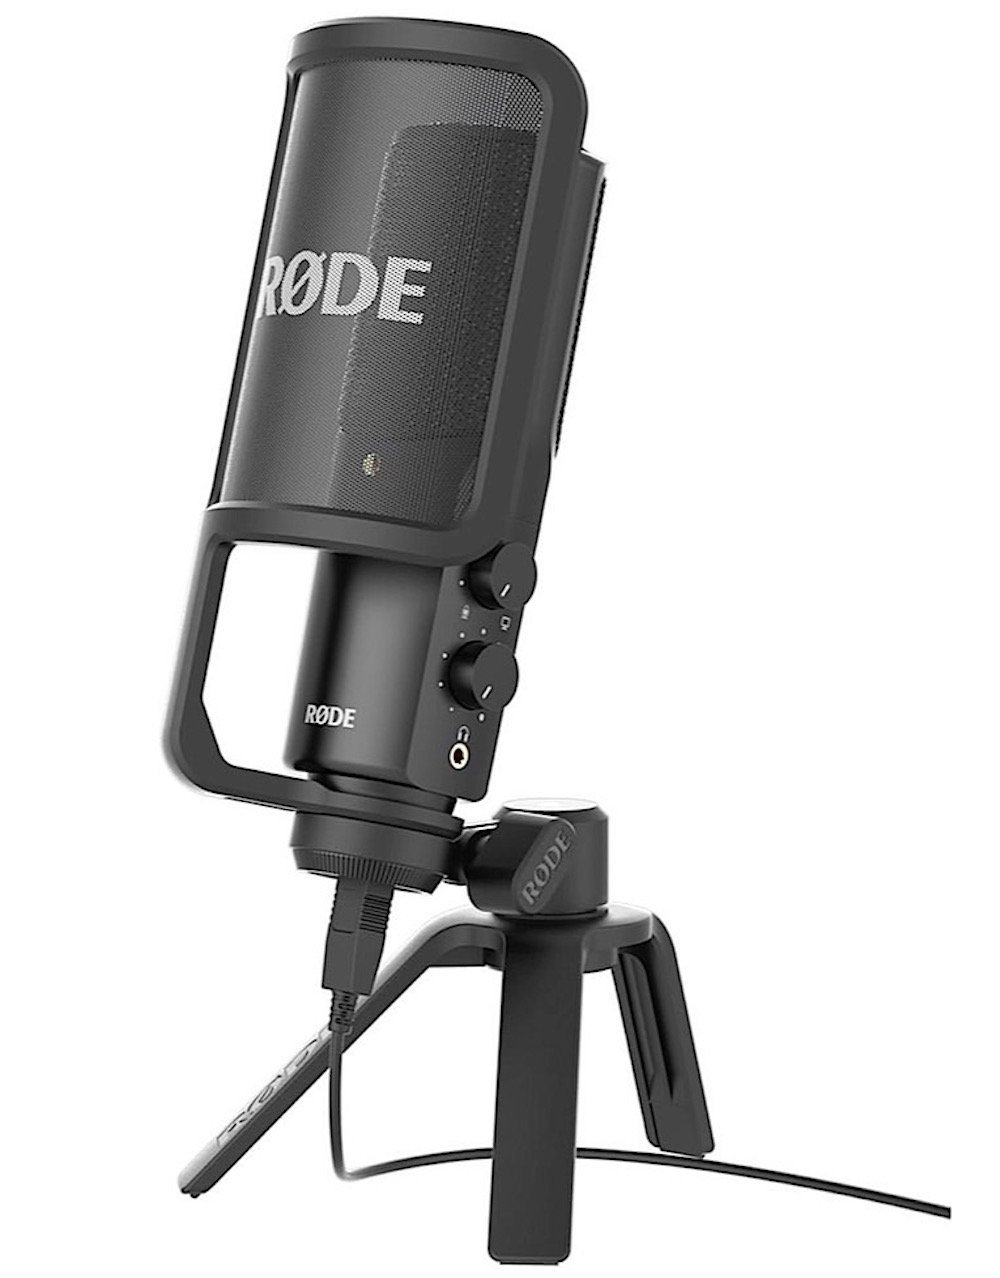 Best Budget Microphones for Podcasting - Rode NT-USB Condenser Microphone